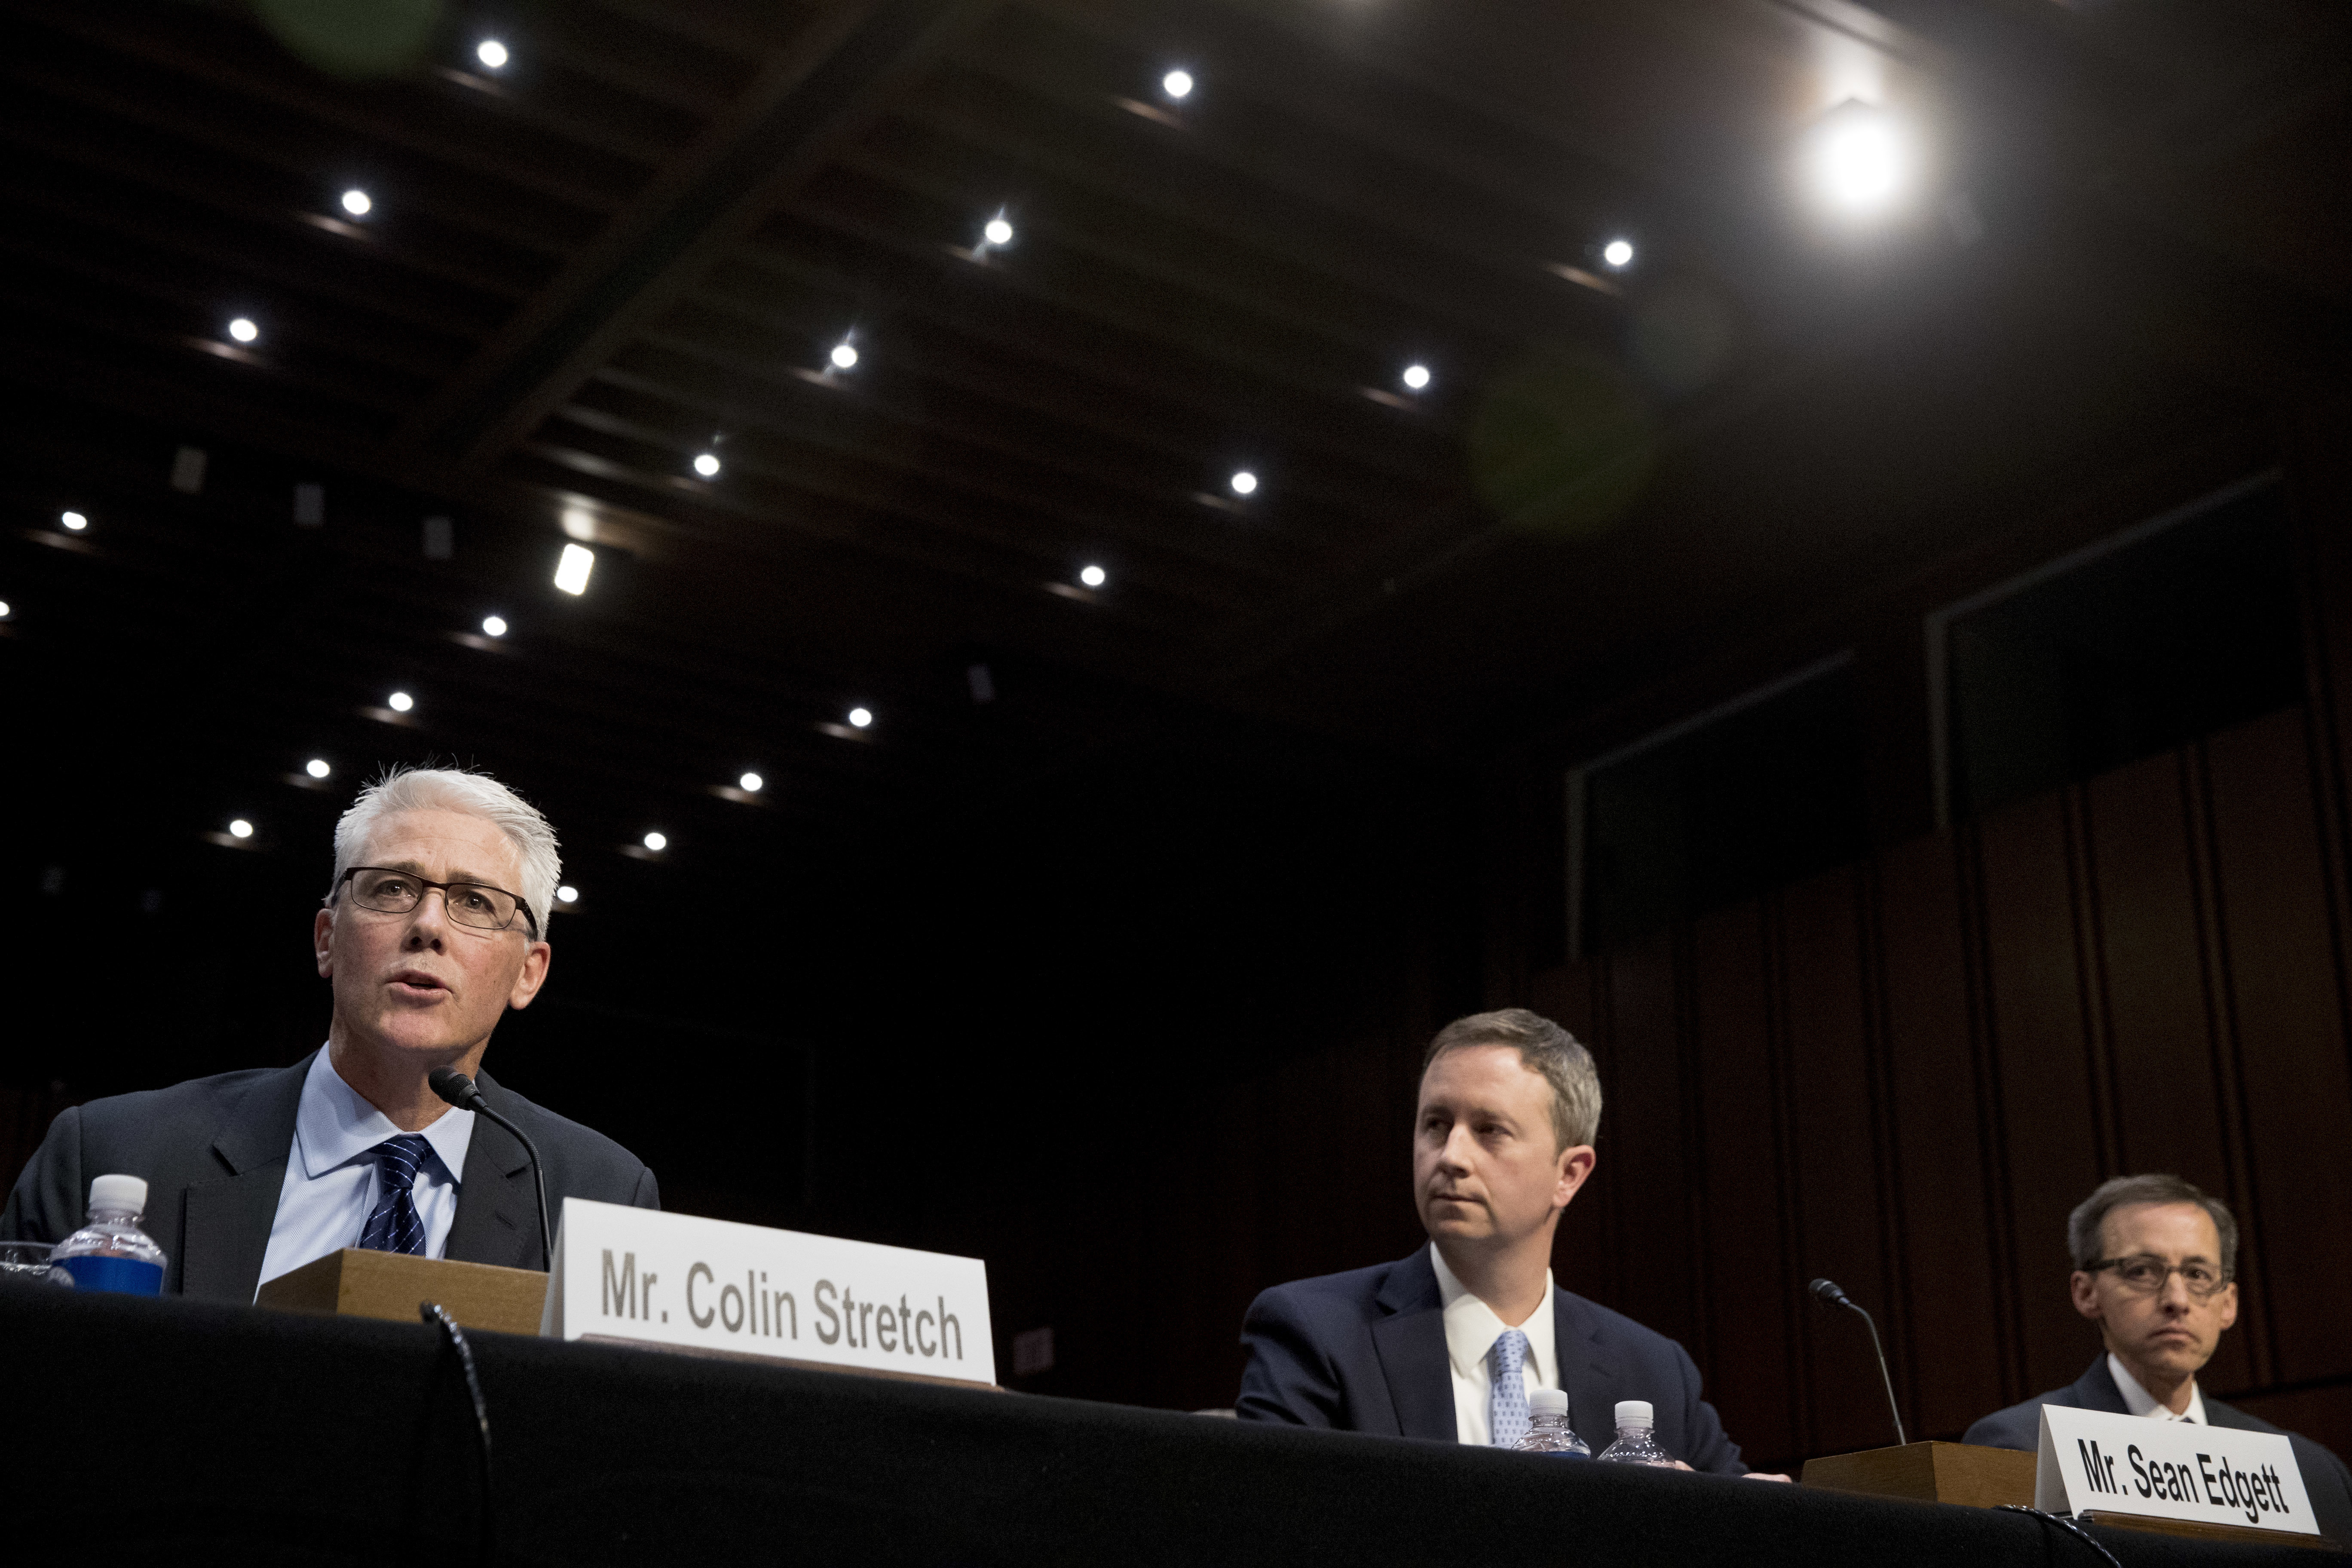 From left, Facebook's General Counsel Colin Stretch, accompanied by Twitter's Acting General Counsel Sean Edgett, and Google's Law Enforcement and Information Security Director Richard Salgado, speaks during a Senate Committee on the Judiciary, Subcommittee on Crime and Terrorism hearing on Capitol Hill in Washington, Tuesday, Oct. 31, 2017, on more signs from tech companies of Russian election activity. (AP Photo/Andrew Harnik)